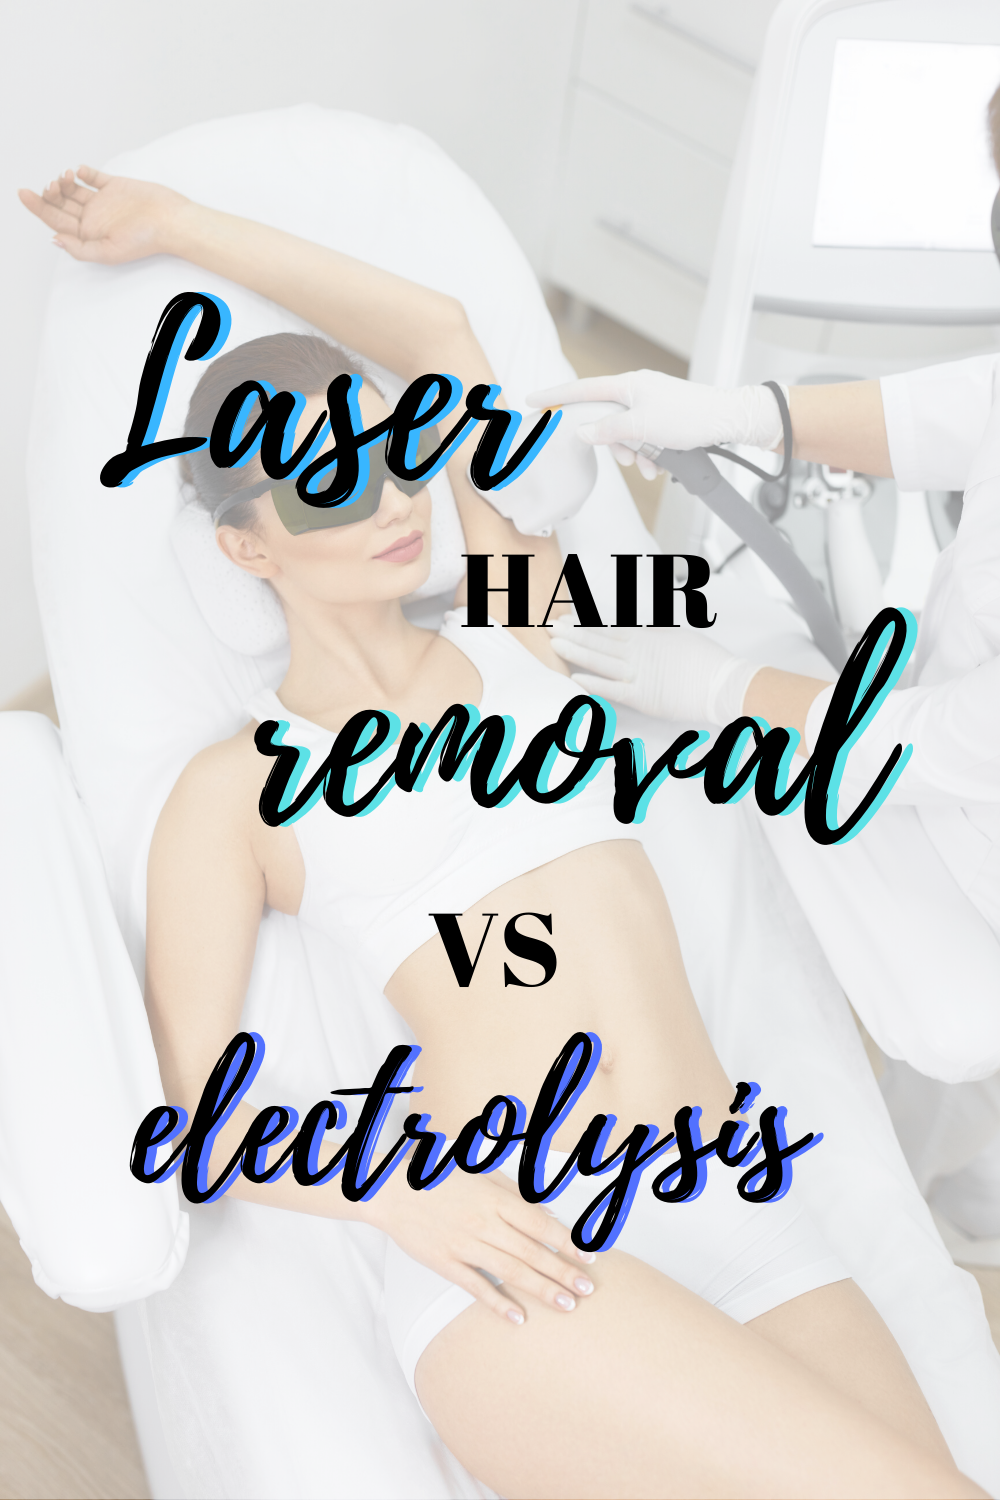 Laser Hair Removal Vs Electrolysis  What U0026 39 S The Difference  In 2020